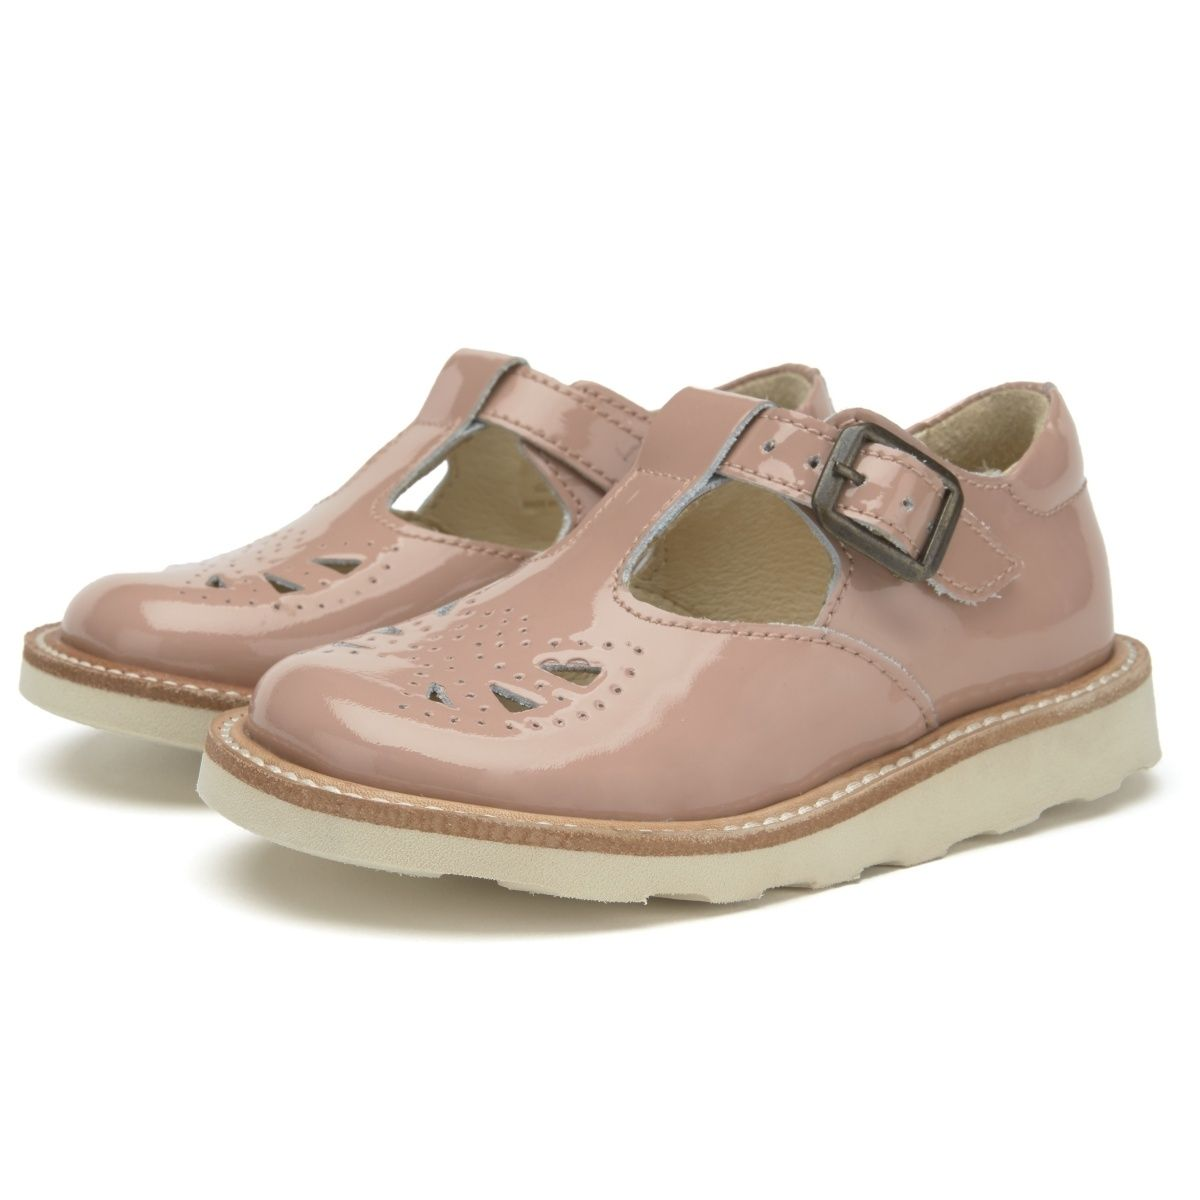 Young Soles T-bar Shoe Rosie Patent Leather pink